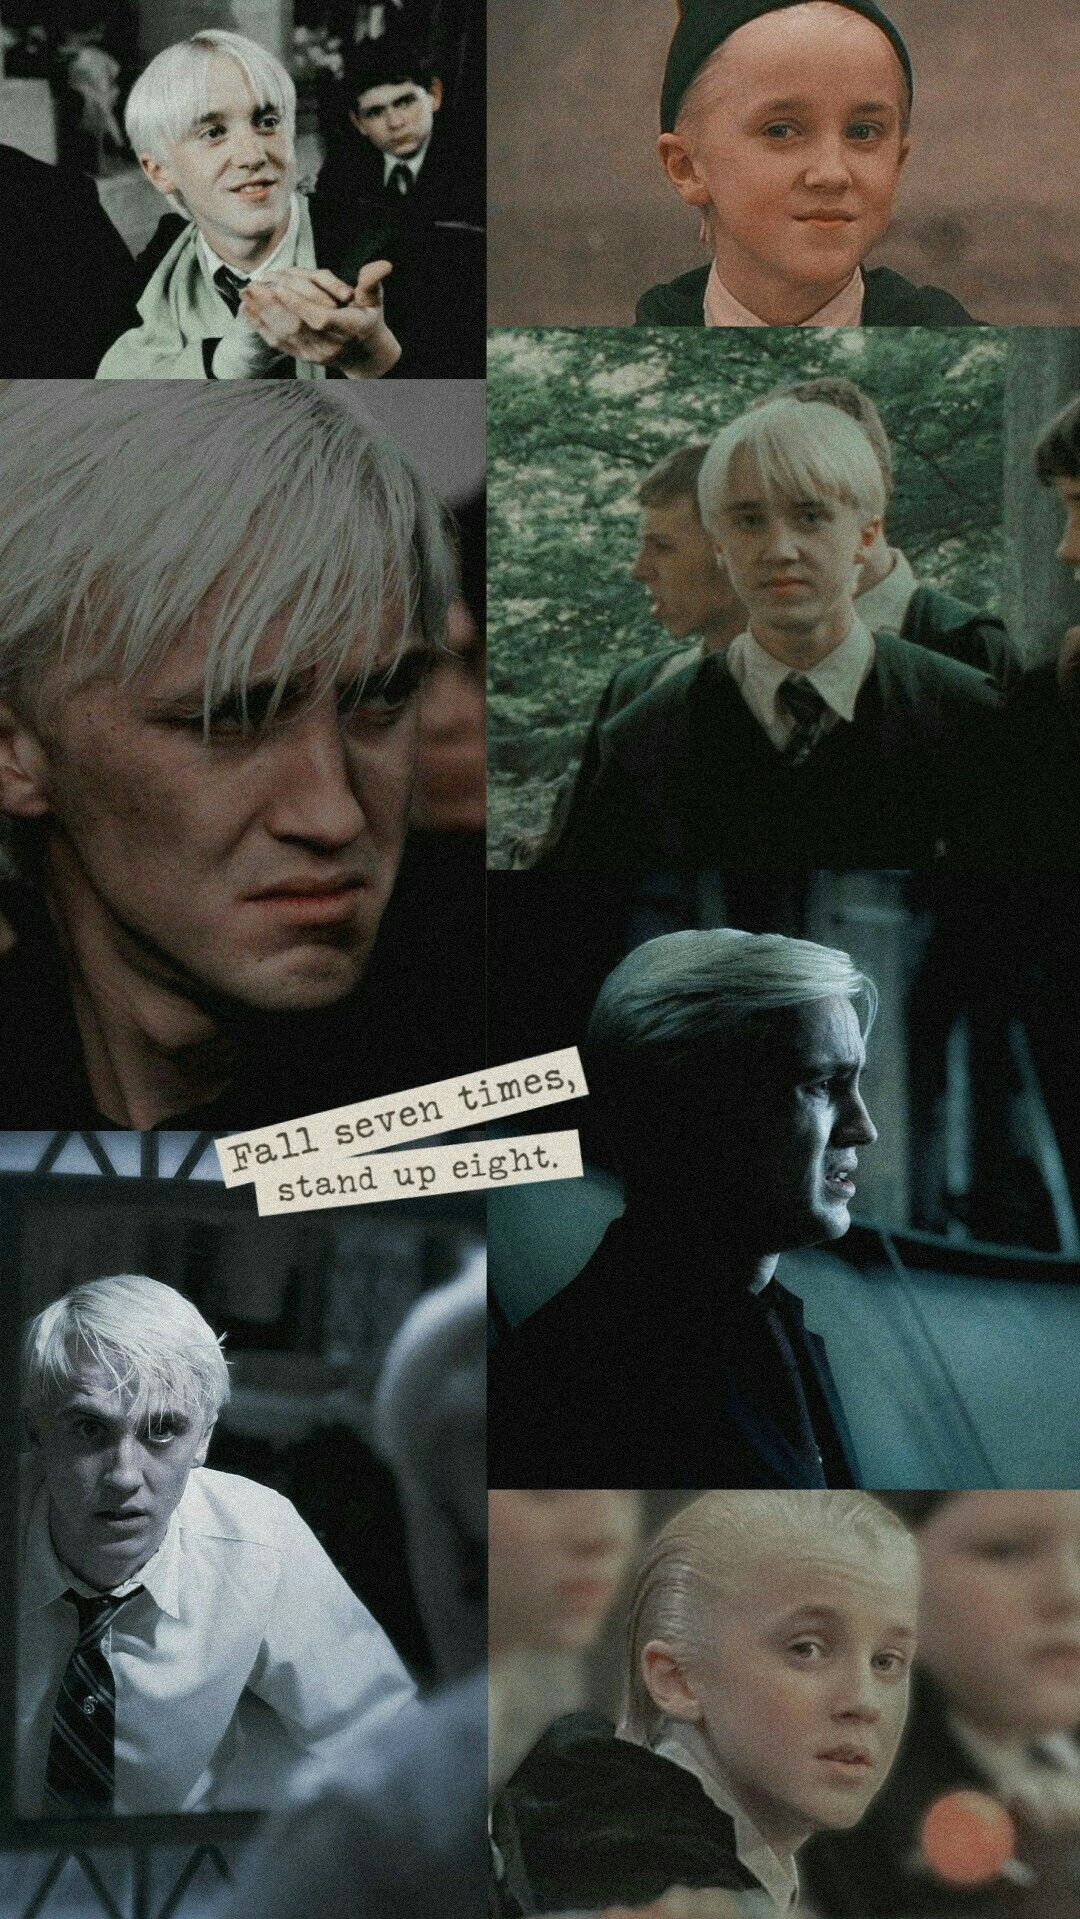 Draco Malfoy Collage Wallpaper Koreasoft In 2020 Harry Potter Draco Malfoy Draco Malfoy Aesthetic Draco Harry Potter